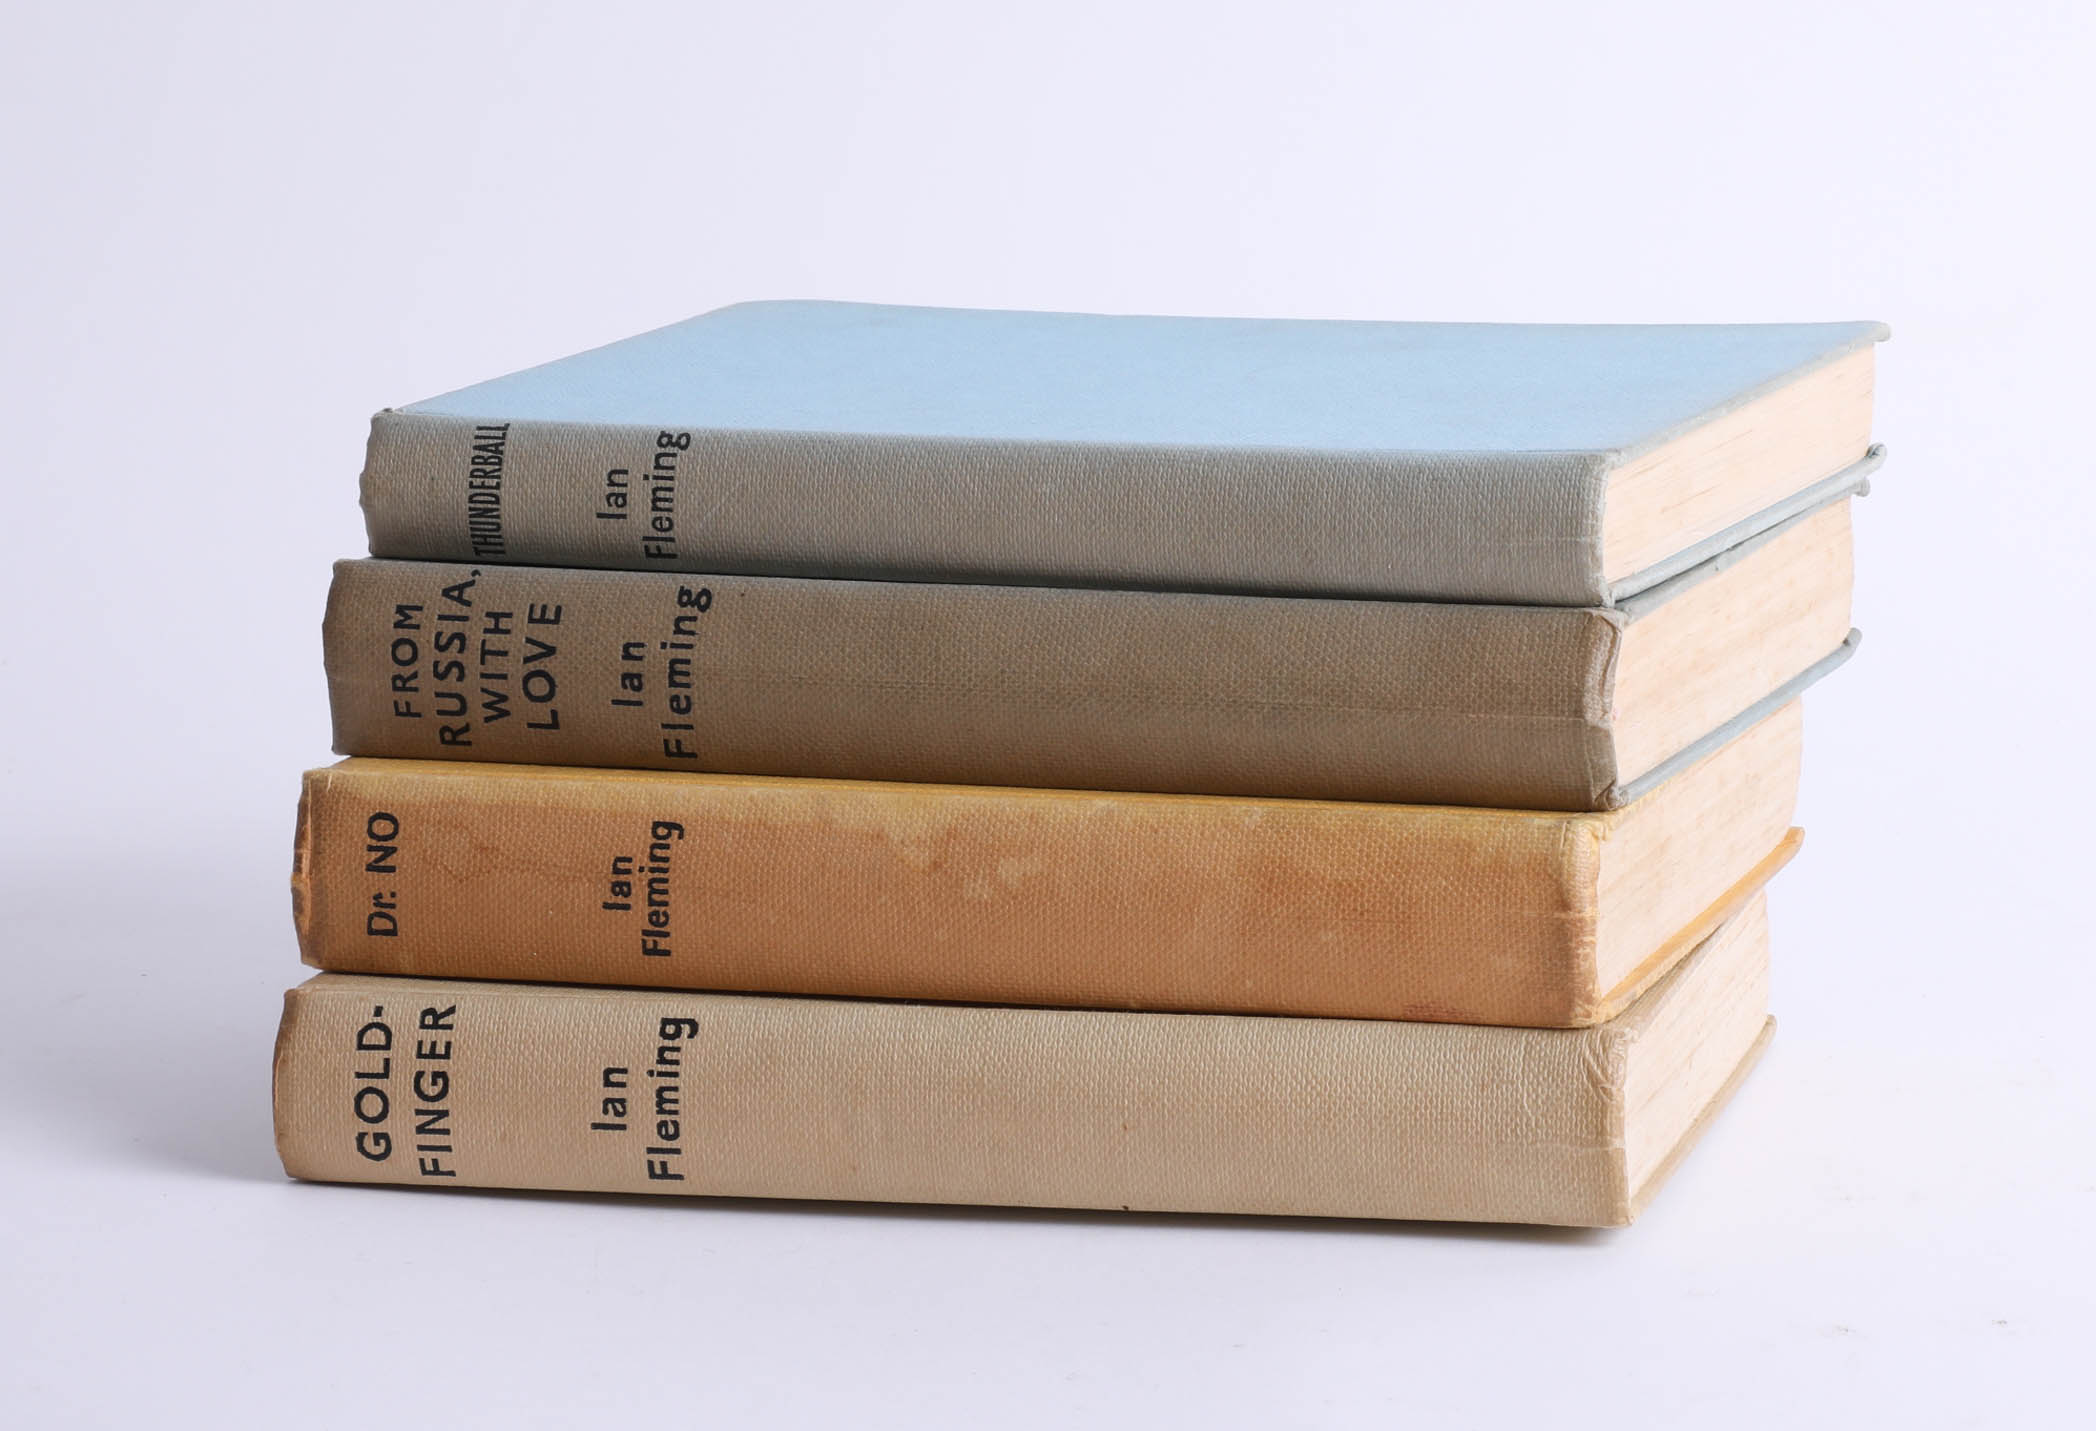 Lot 017 - Four James Bond book club novels, including Dr No, Thunder Ball, Gold Finger, and From Russia With